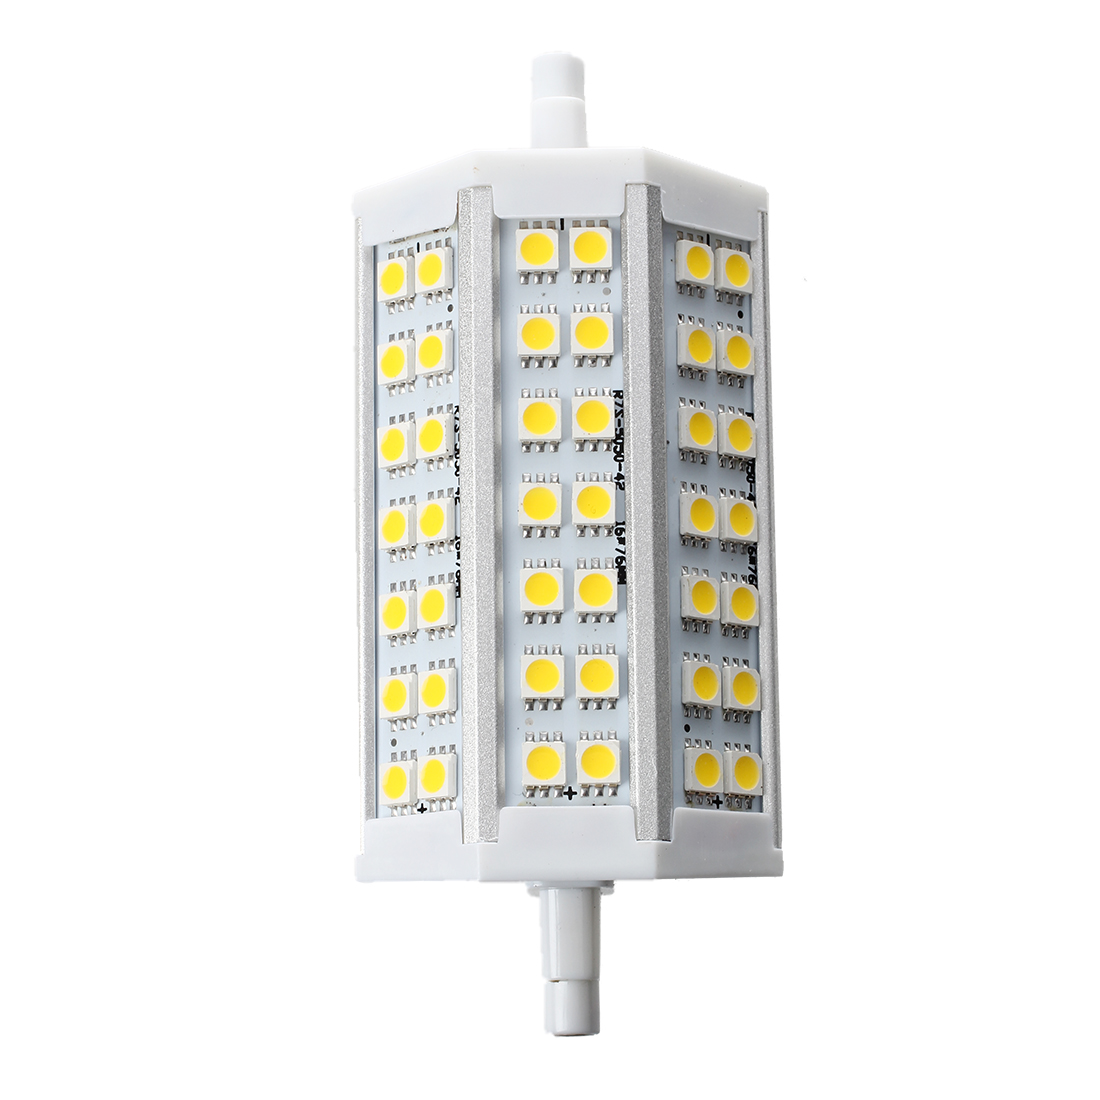 CSS R7S J118 10w LED Dimmable Warm White Colour Replacement for Halogen bulb 42 SMD 5050 Energy Saving Security Pir Flood Ligh